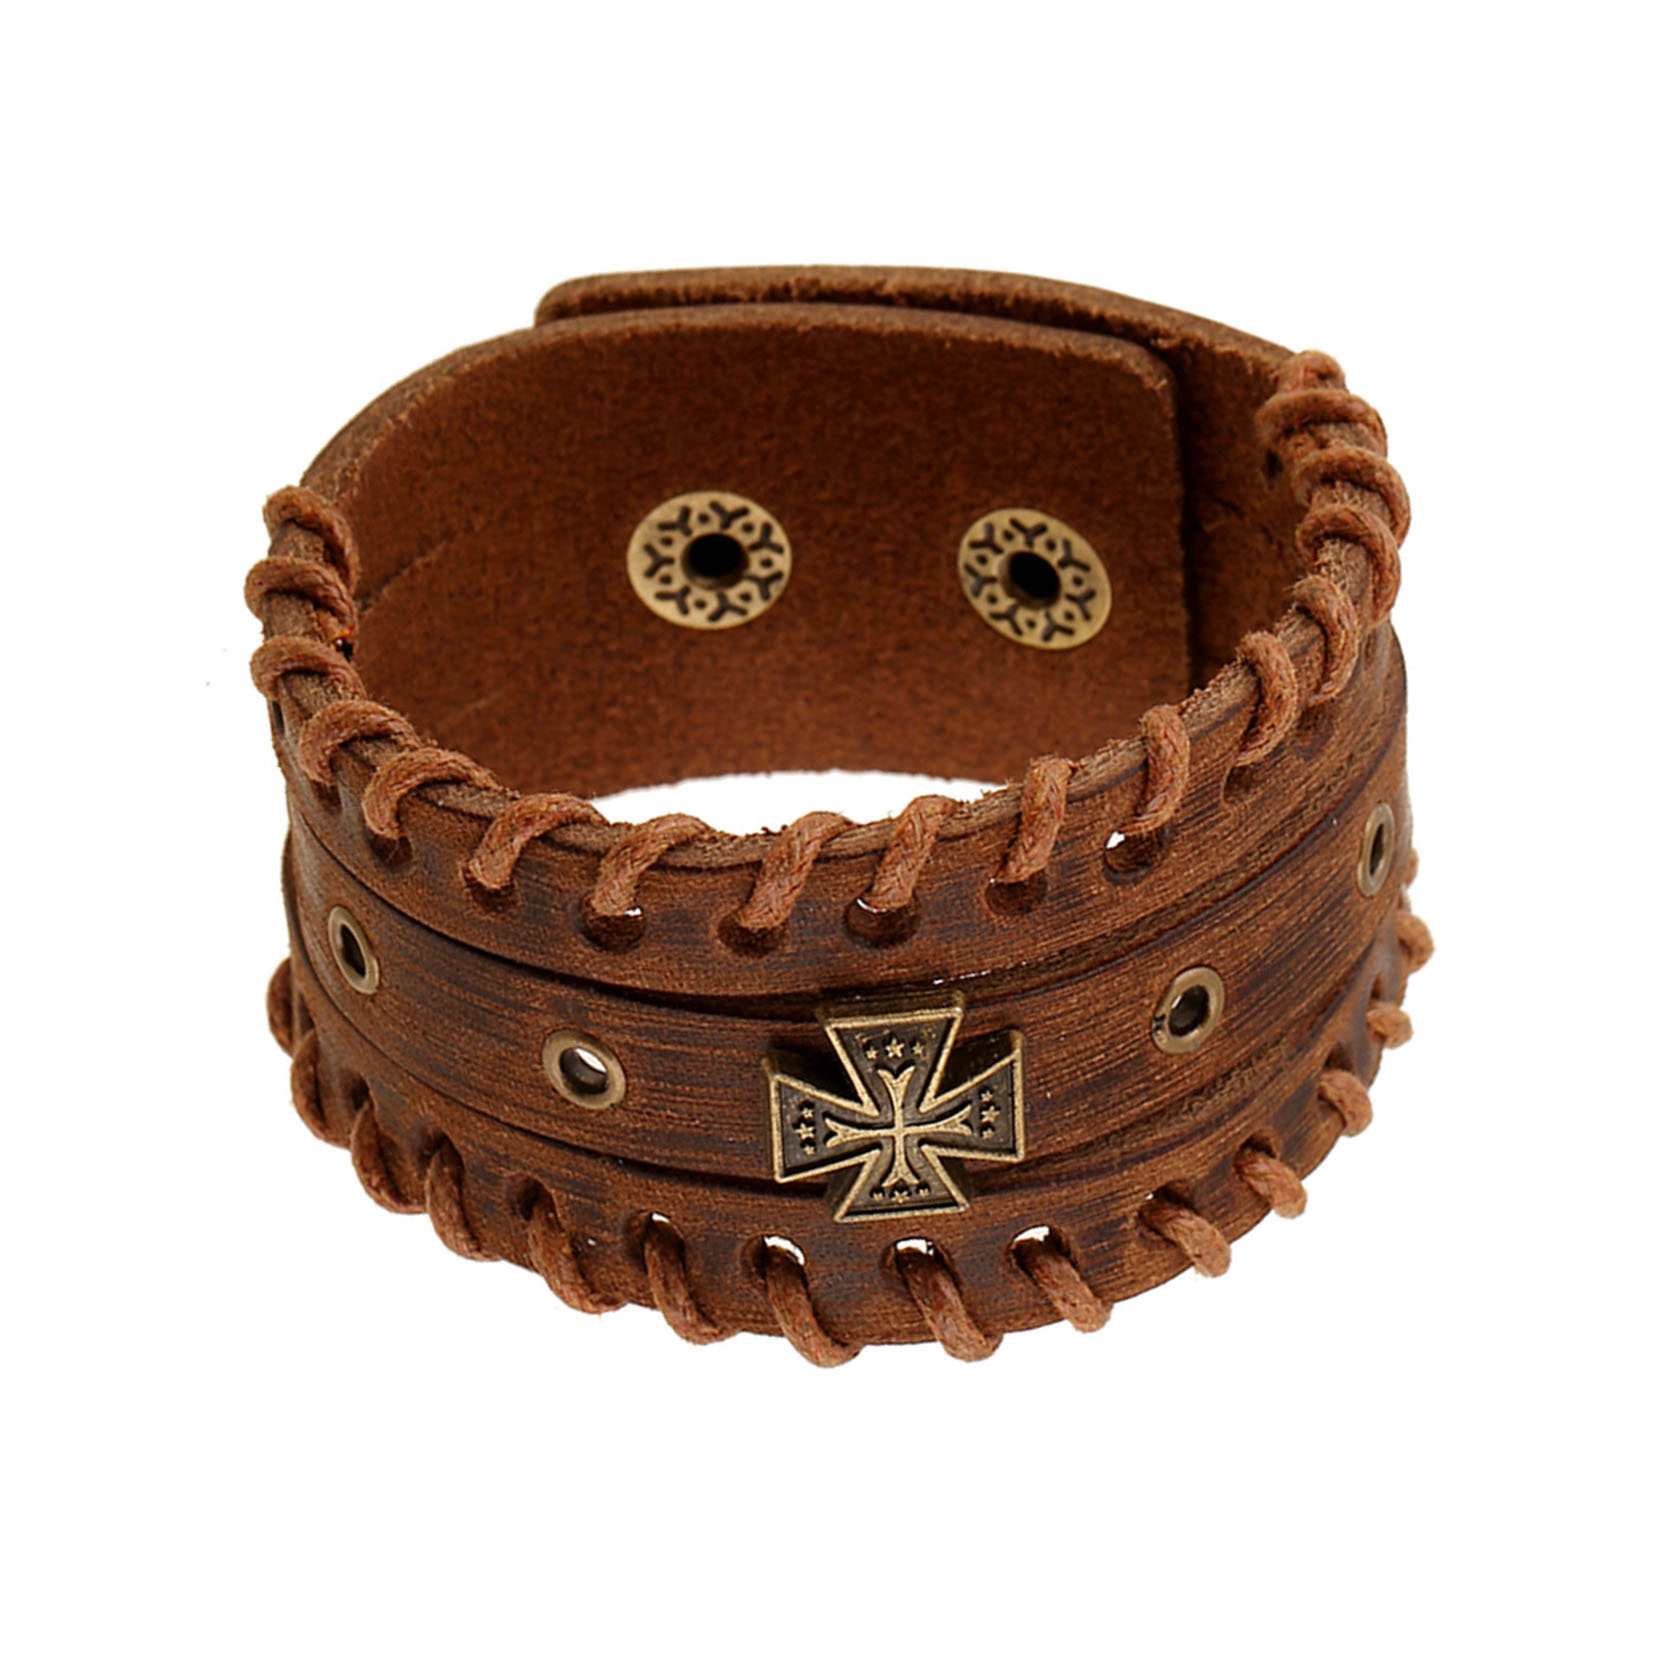 High Quality Brown Unisex Metal Leather Bracelet Cowhide Punk Rock Charm Bracelet Retro Cross Pattern Bling Jewelry(China (Mainland))